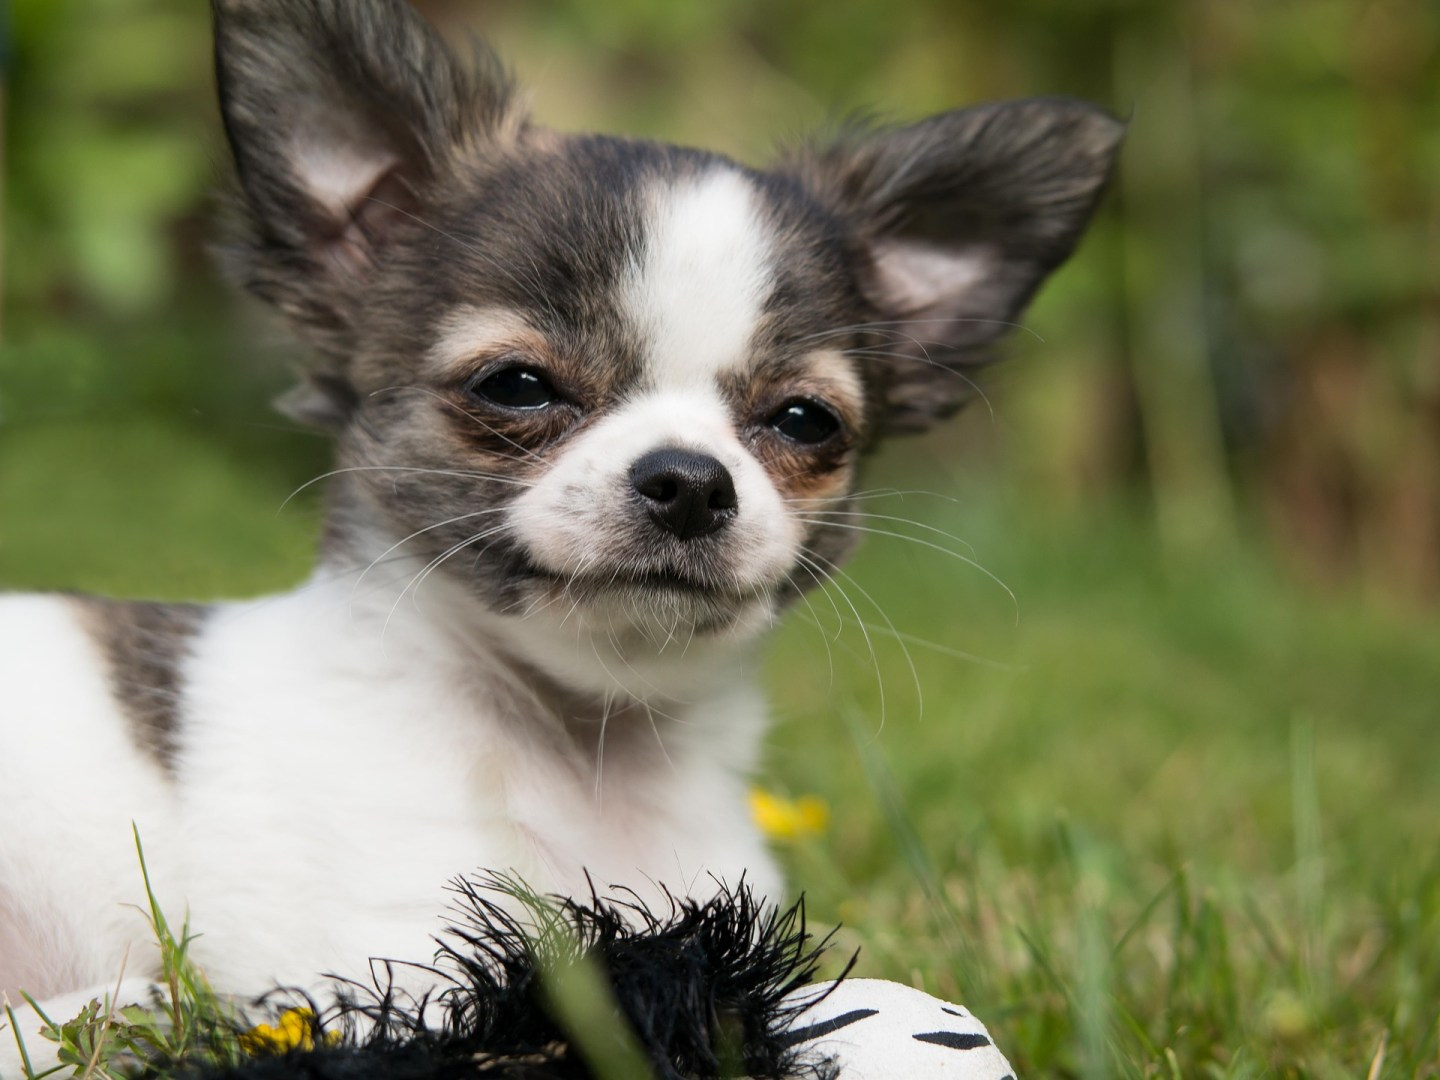 Chihuaua puppy lying on grass, looking at camera, depicting money saving advice article for dog owners